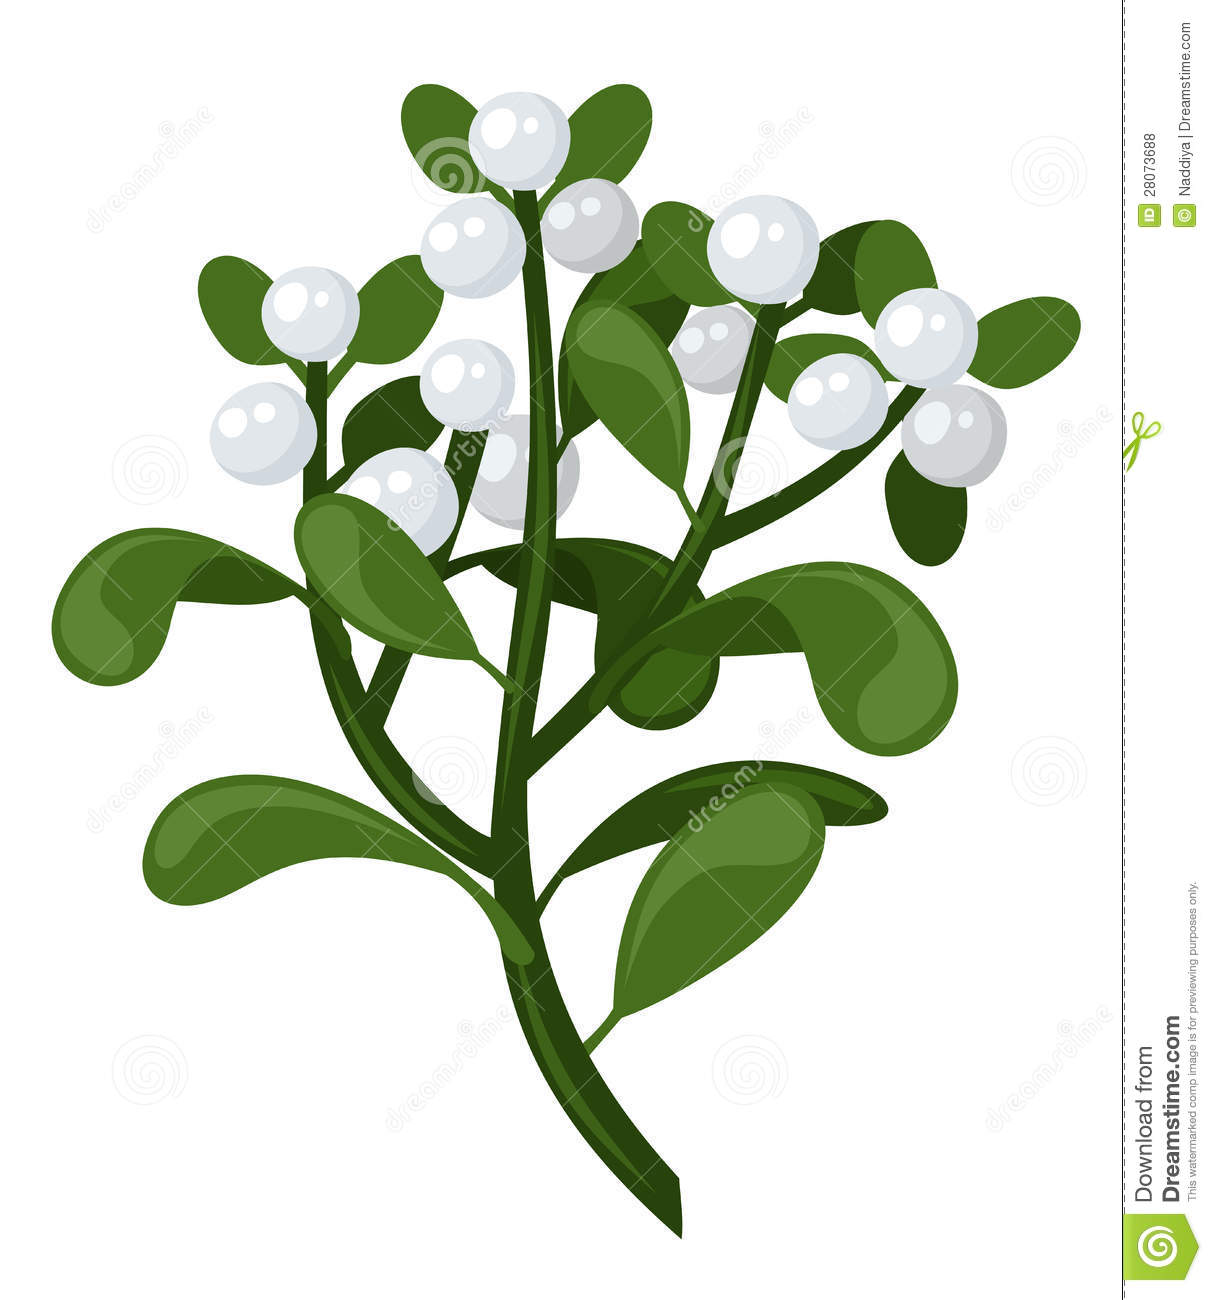 Mistletoe Branch. Vector Illustration. Royalty Free Stock Photos ...